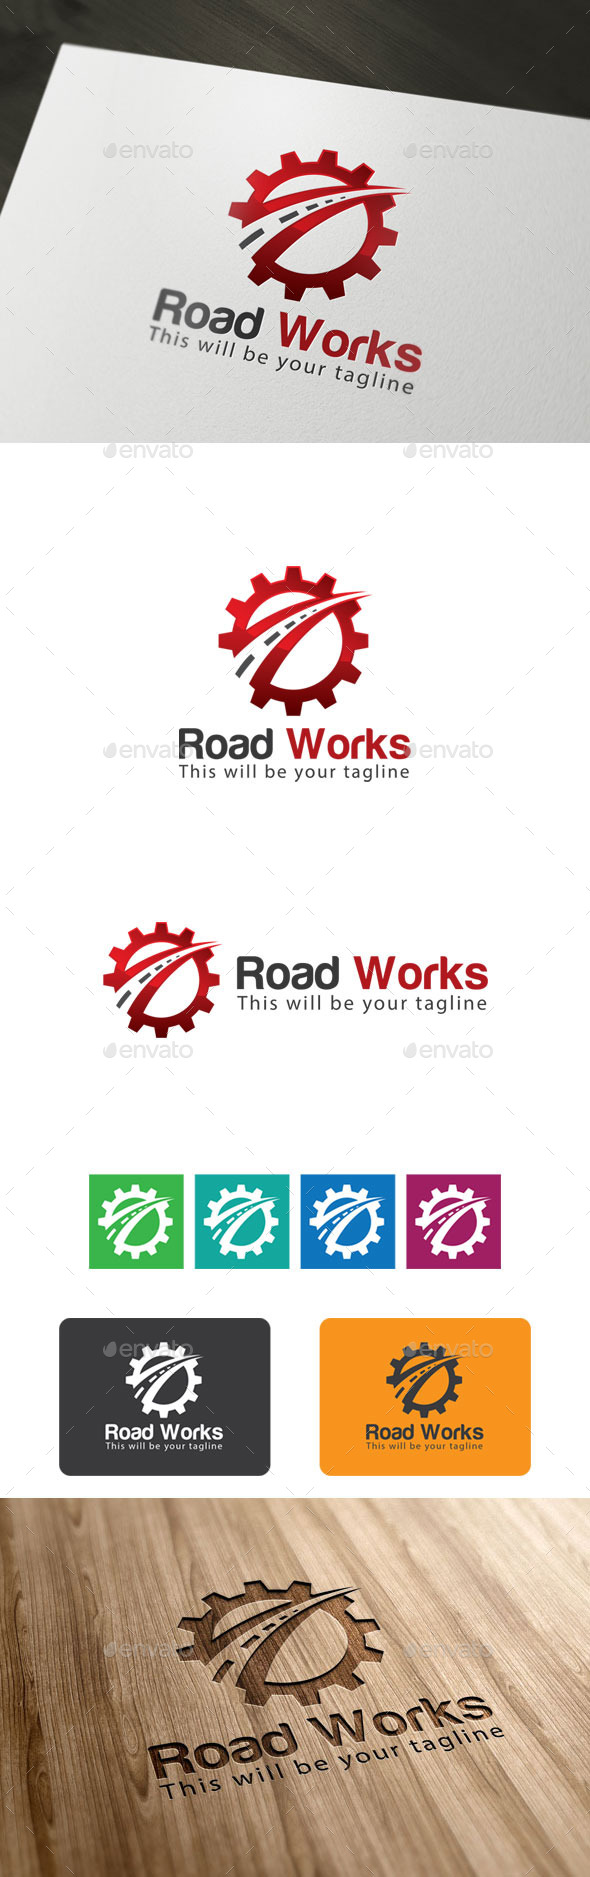 GraphicRiver Road Works 9939773